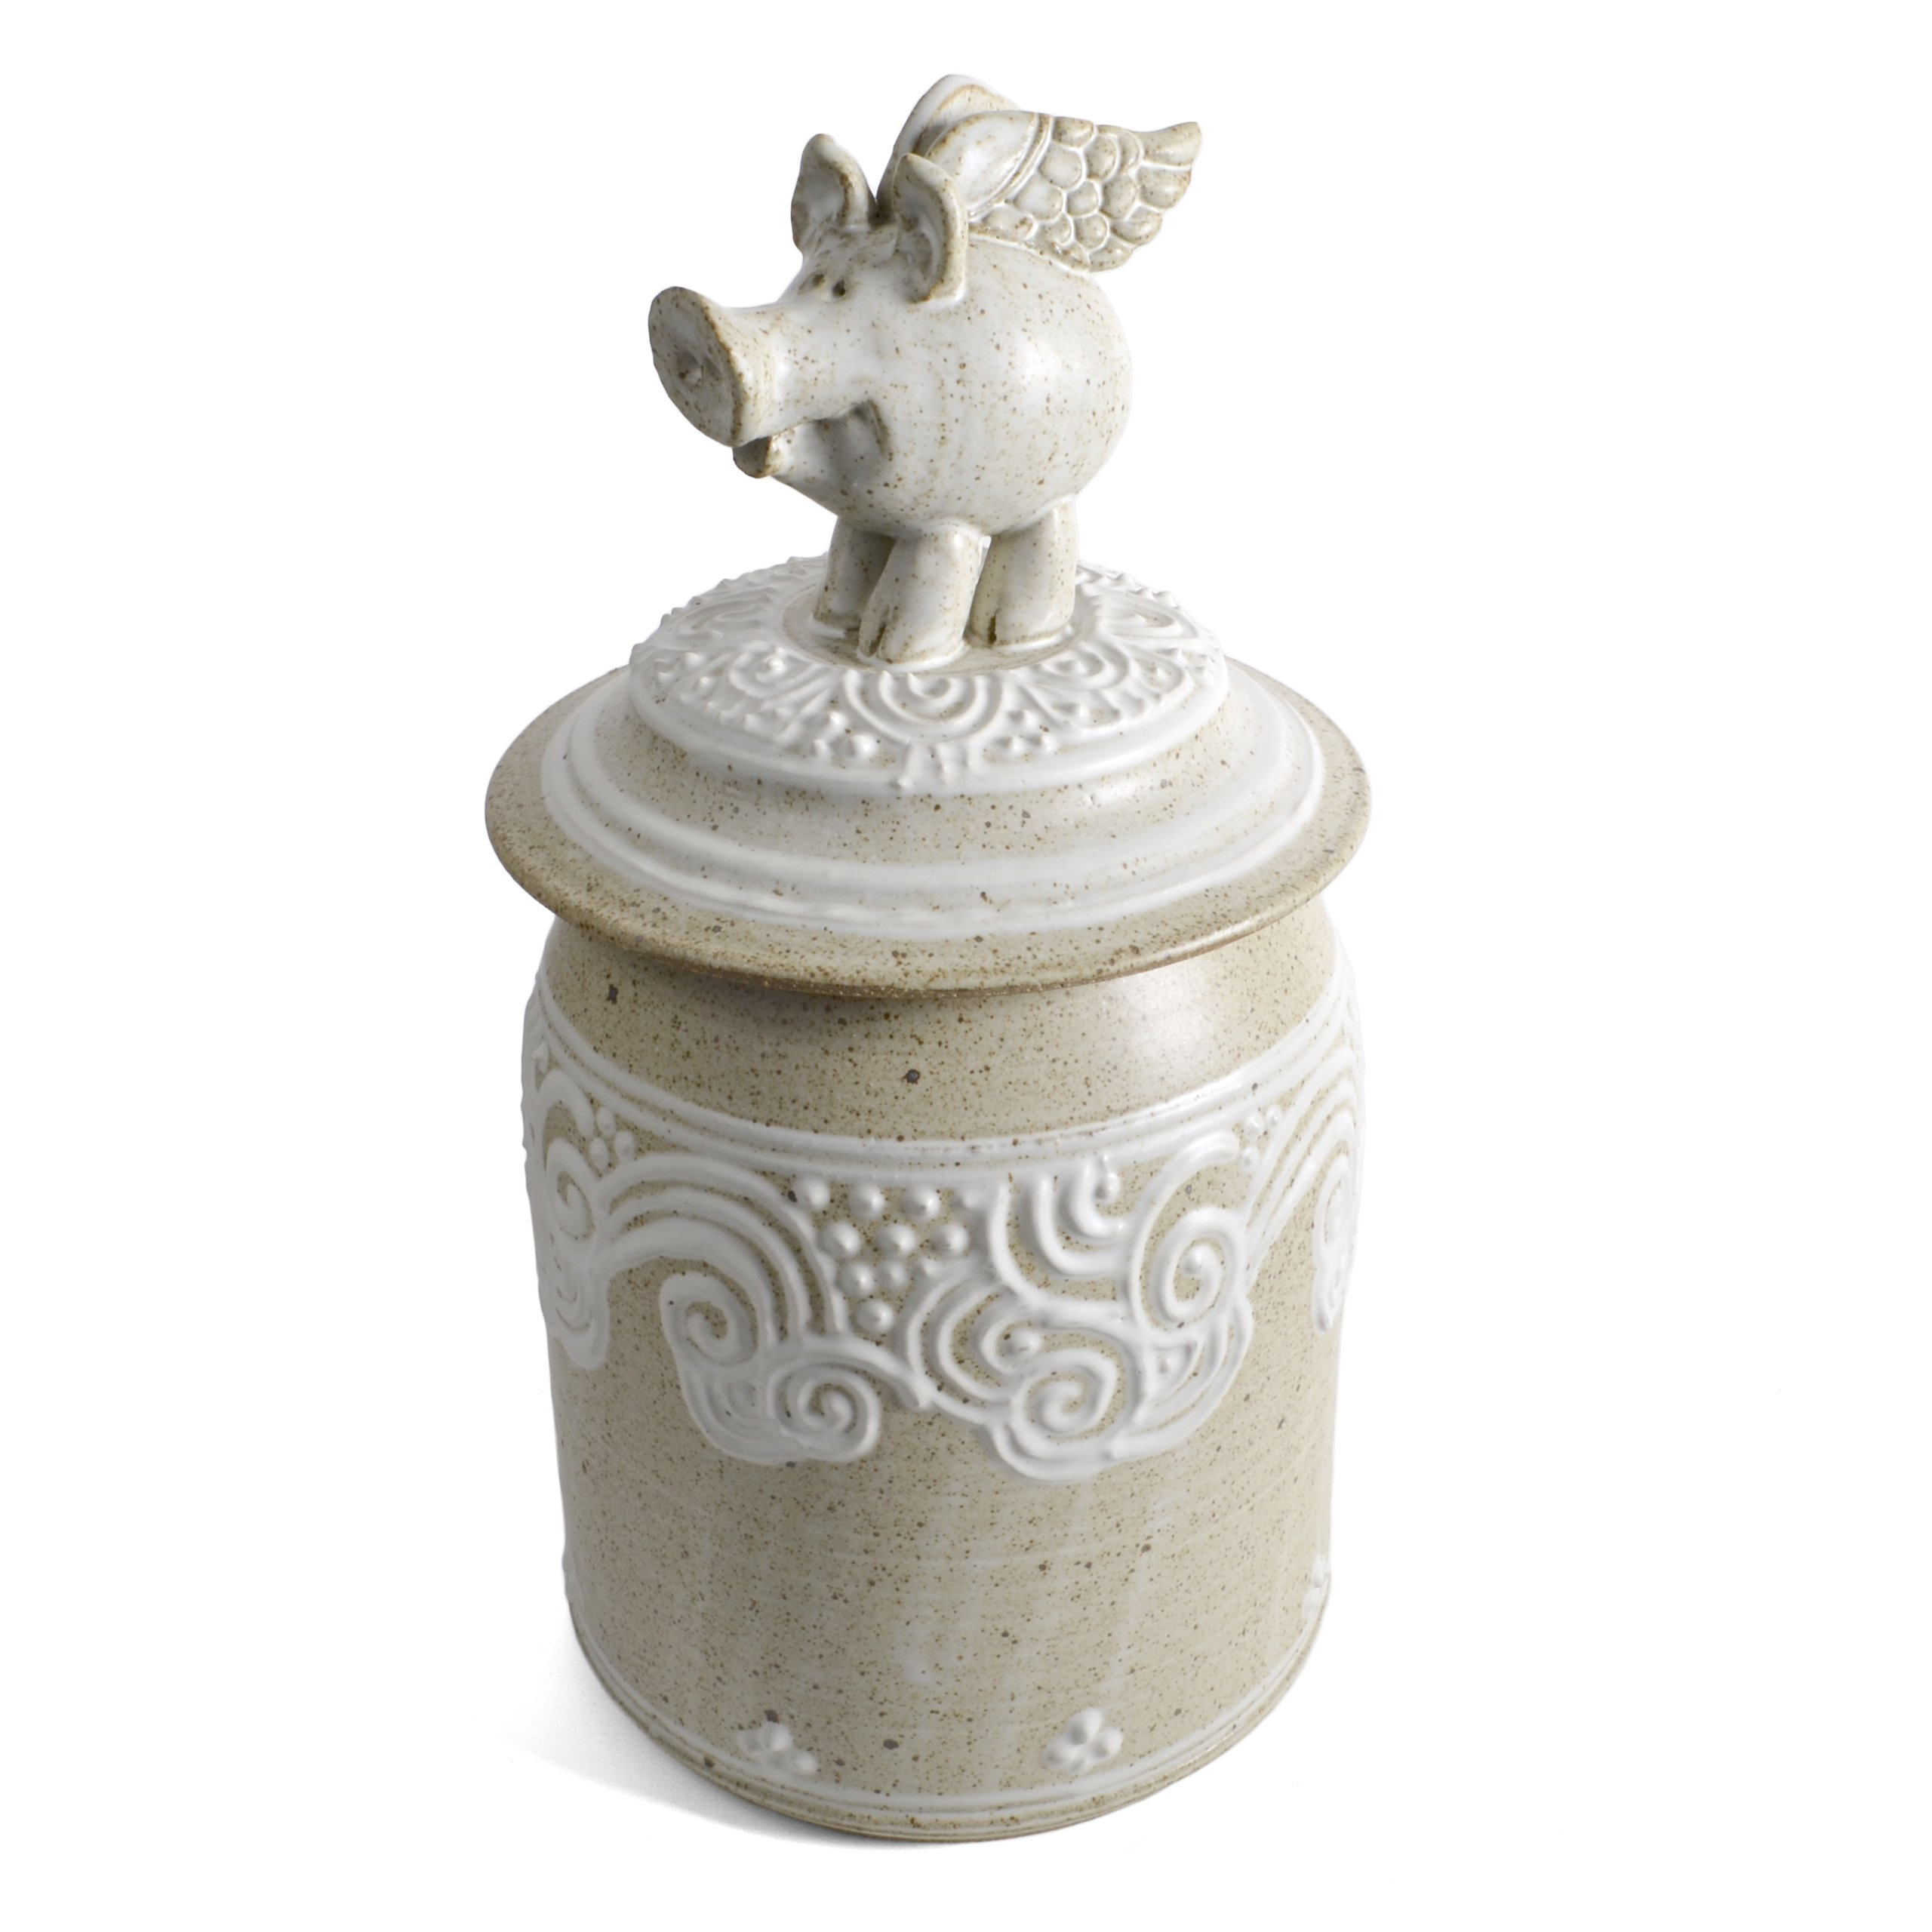 The Potters, LTD Flying Pig Cookie Jar, Stony